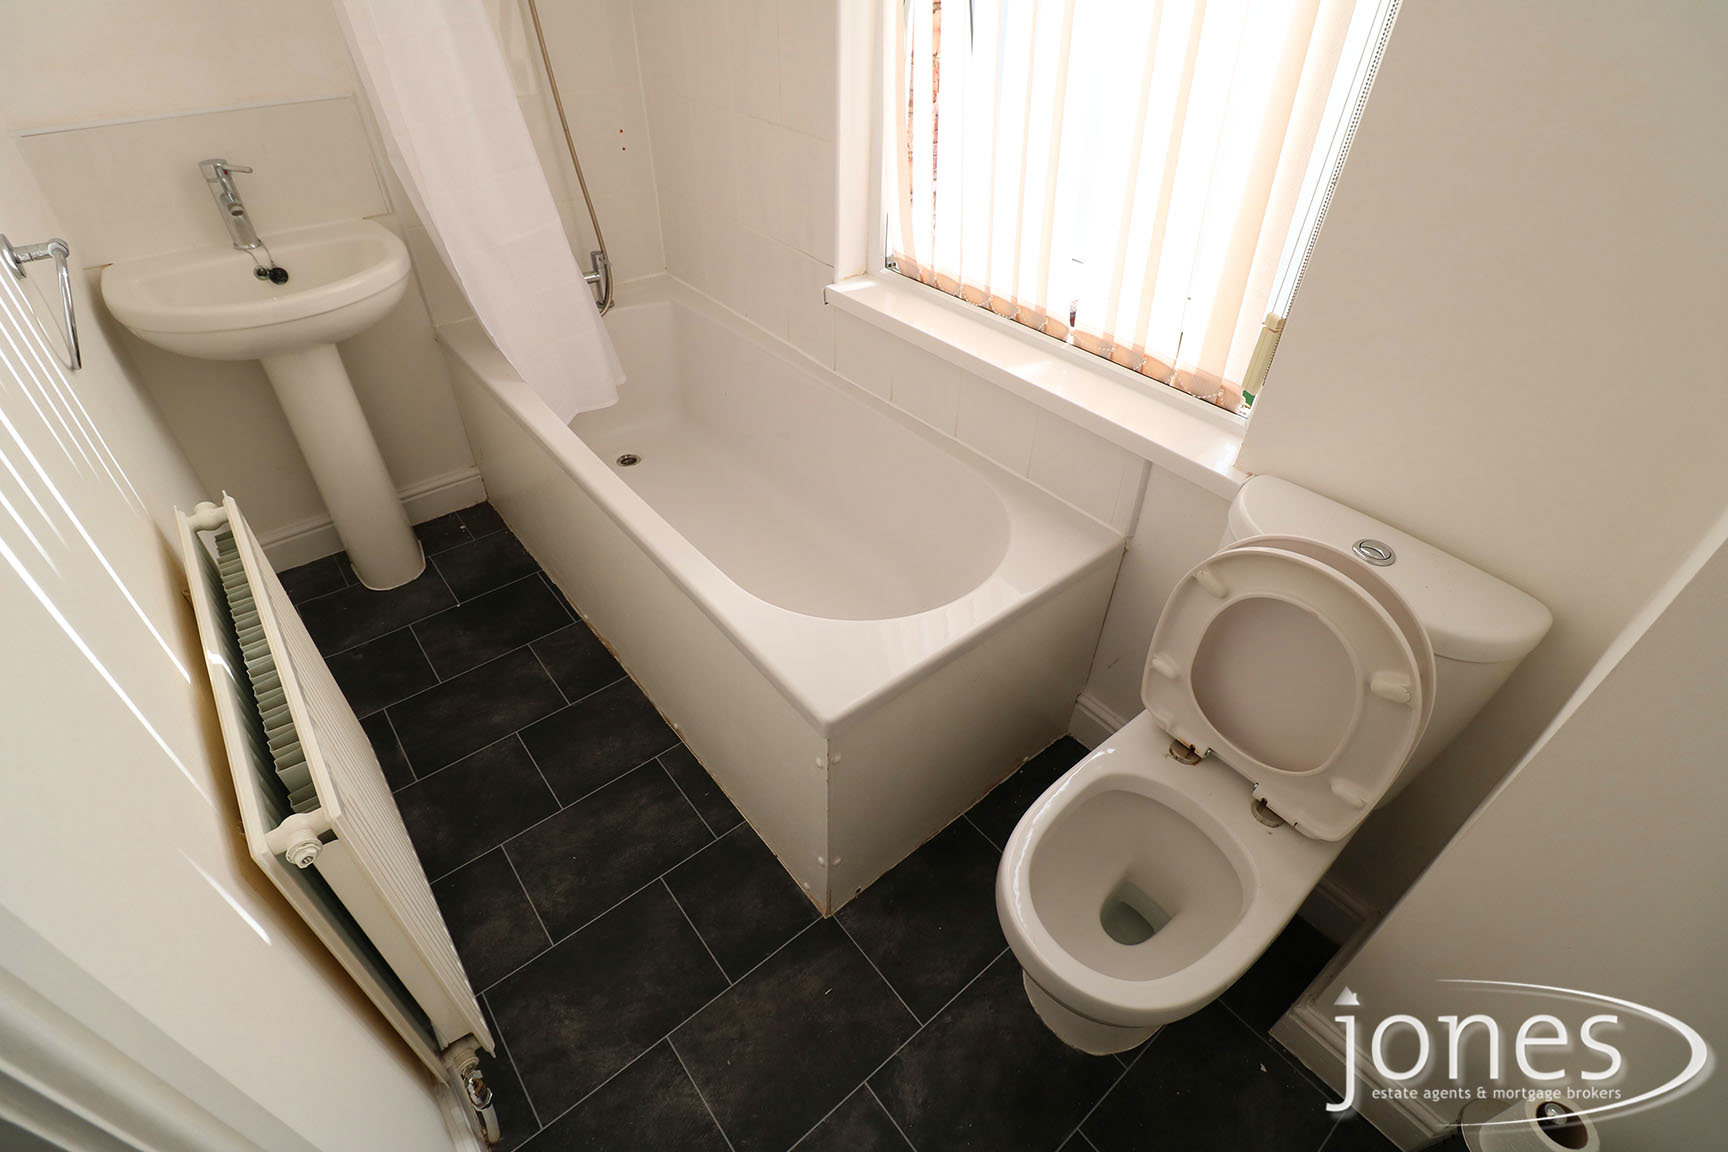 Home for Sale Let - Photo 07 Rosebery Street, Darlington, DL3 6EU